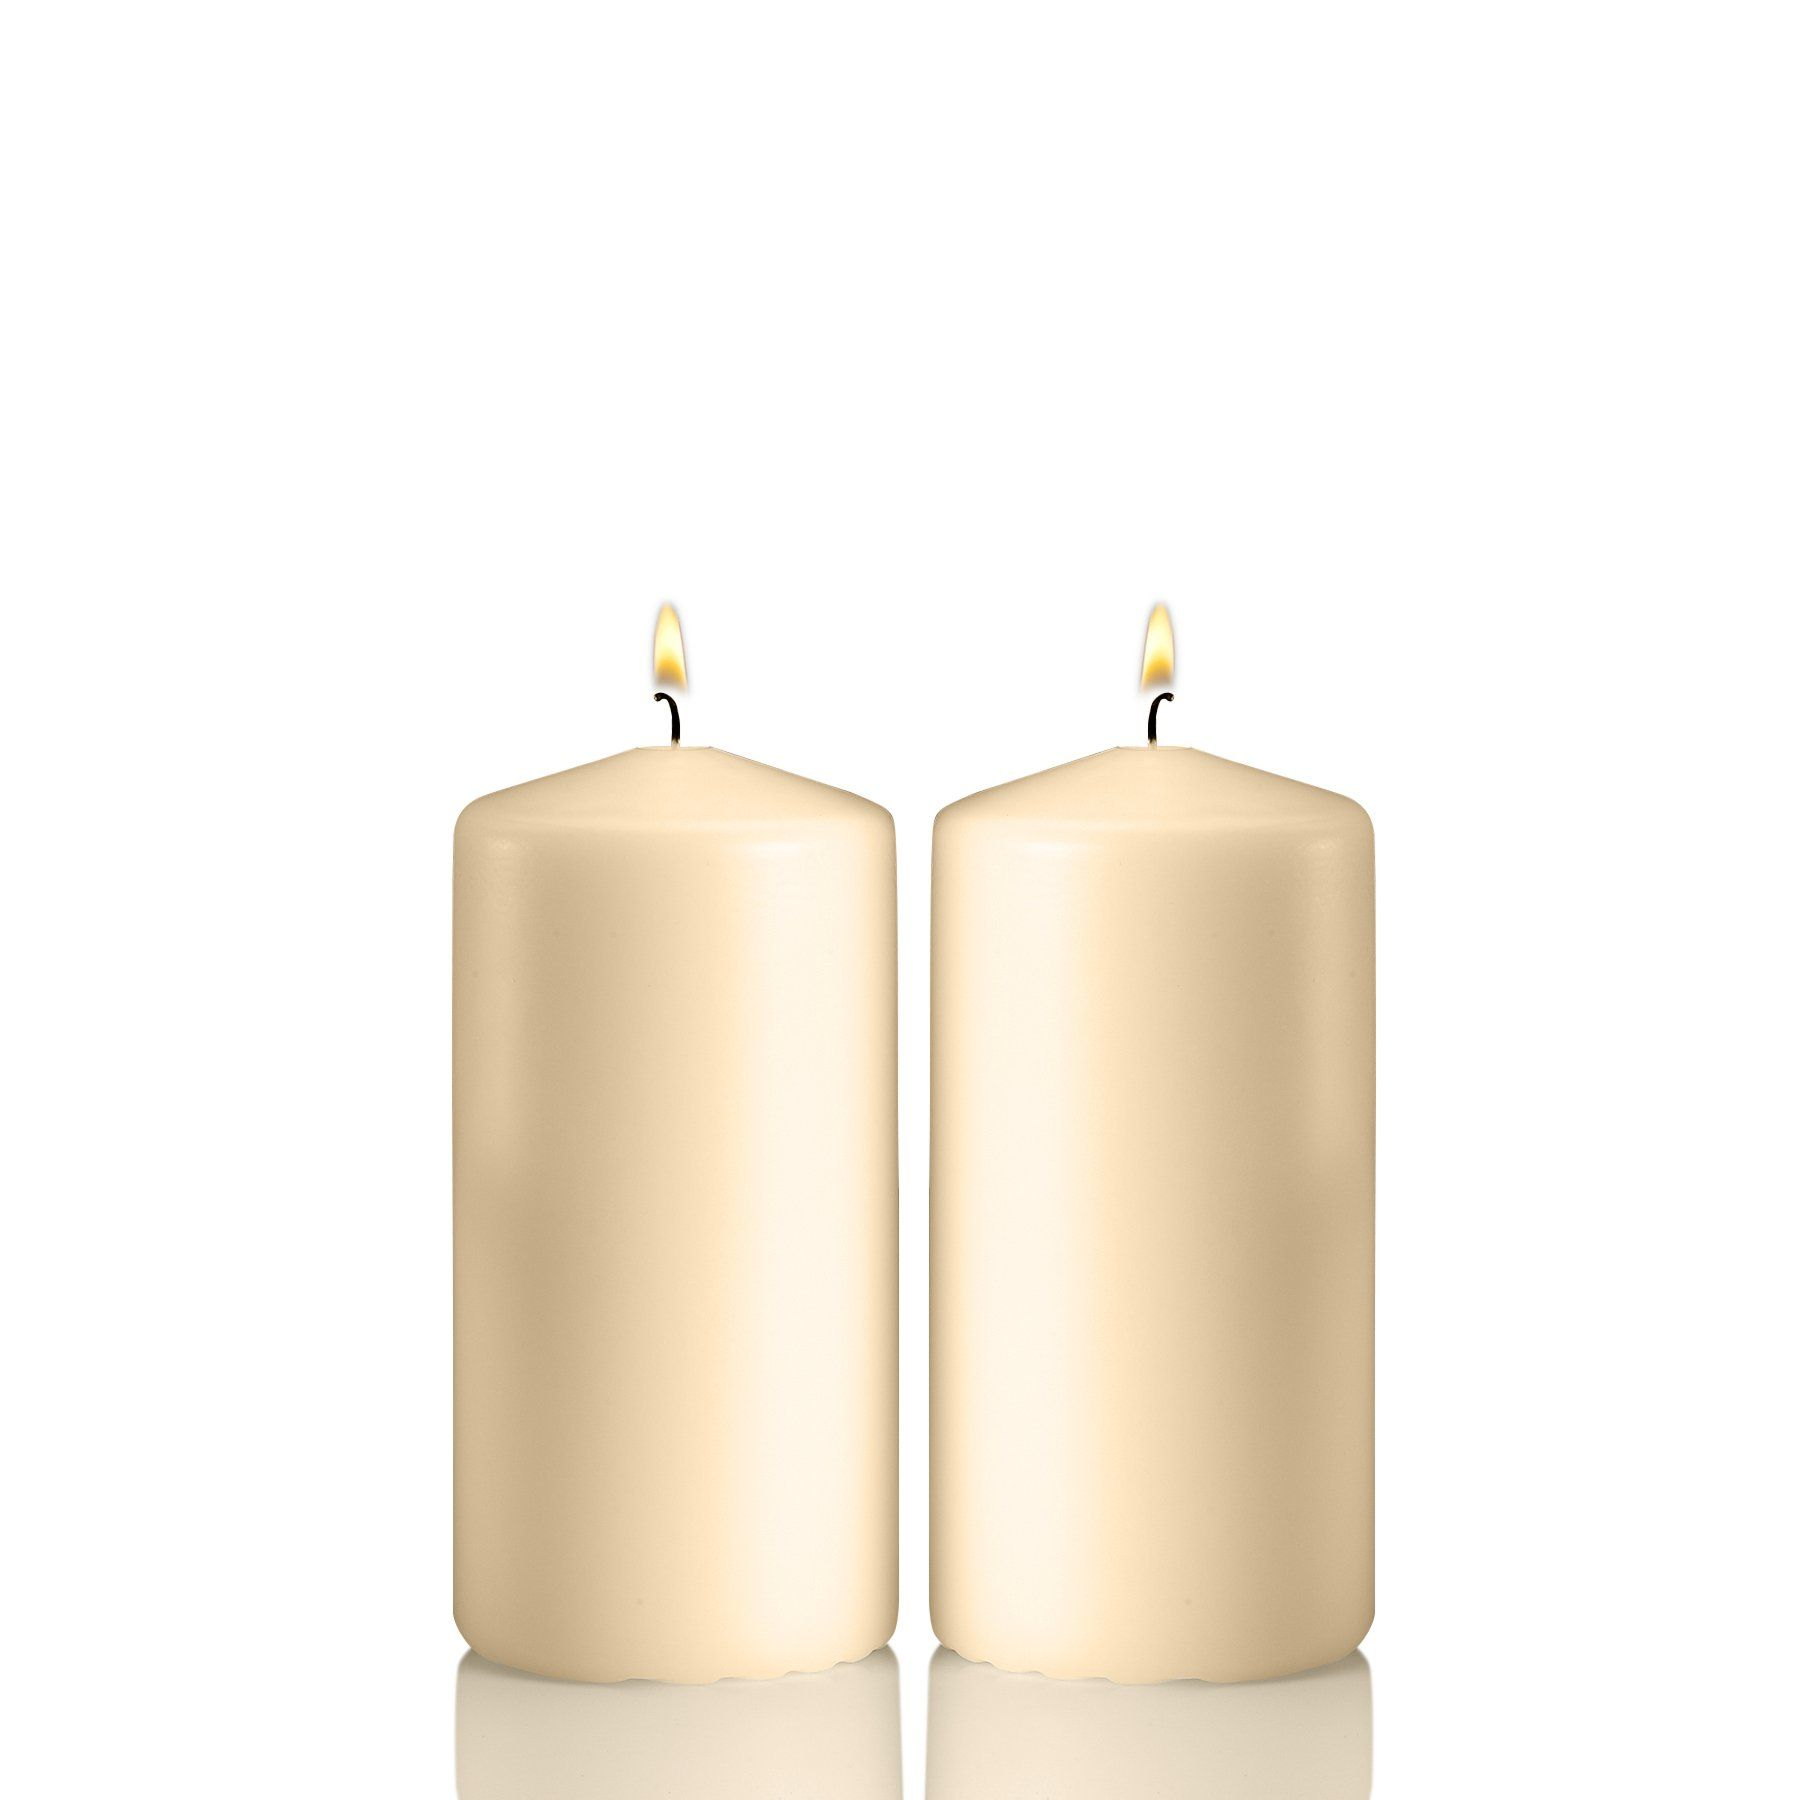 Set of 2 Unscented Candles 3 inch Thick Light In The Dark Ivory Pillar Candles 36 Hour Clean Burn Time 6 inch Tall